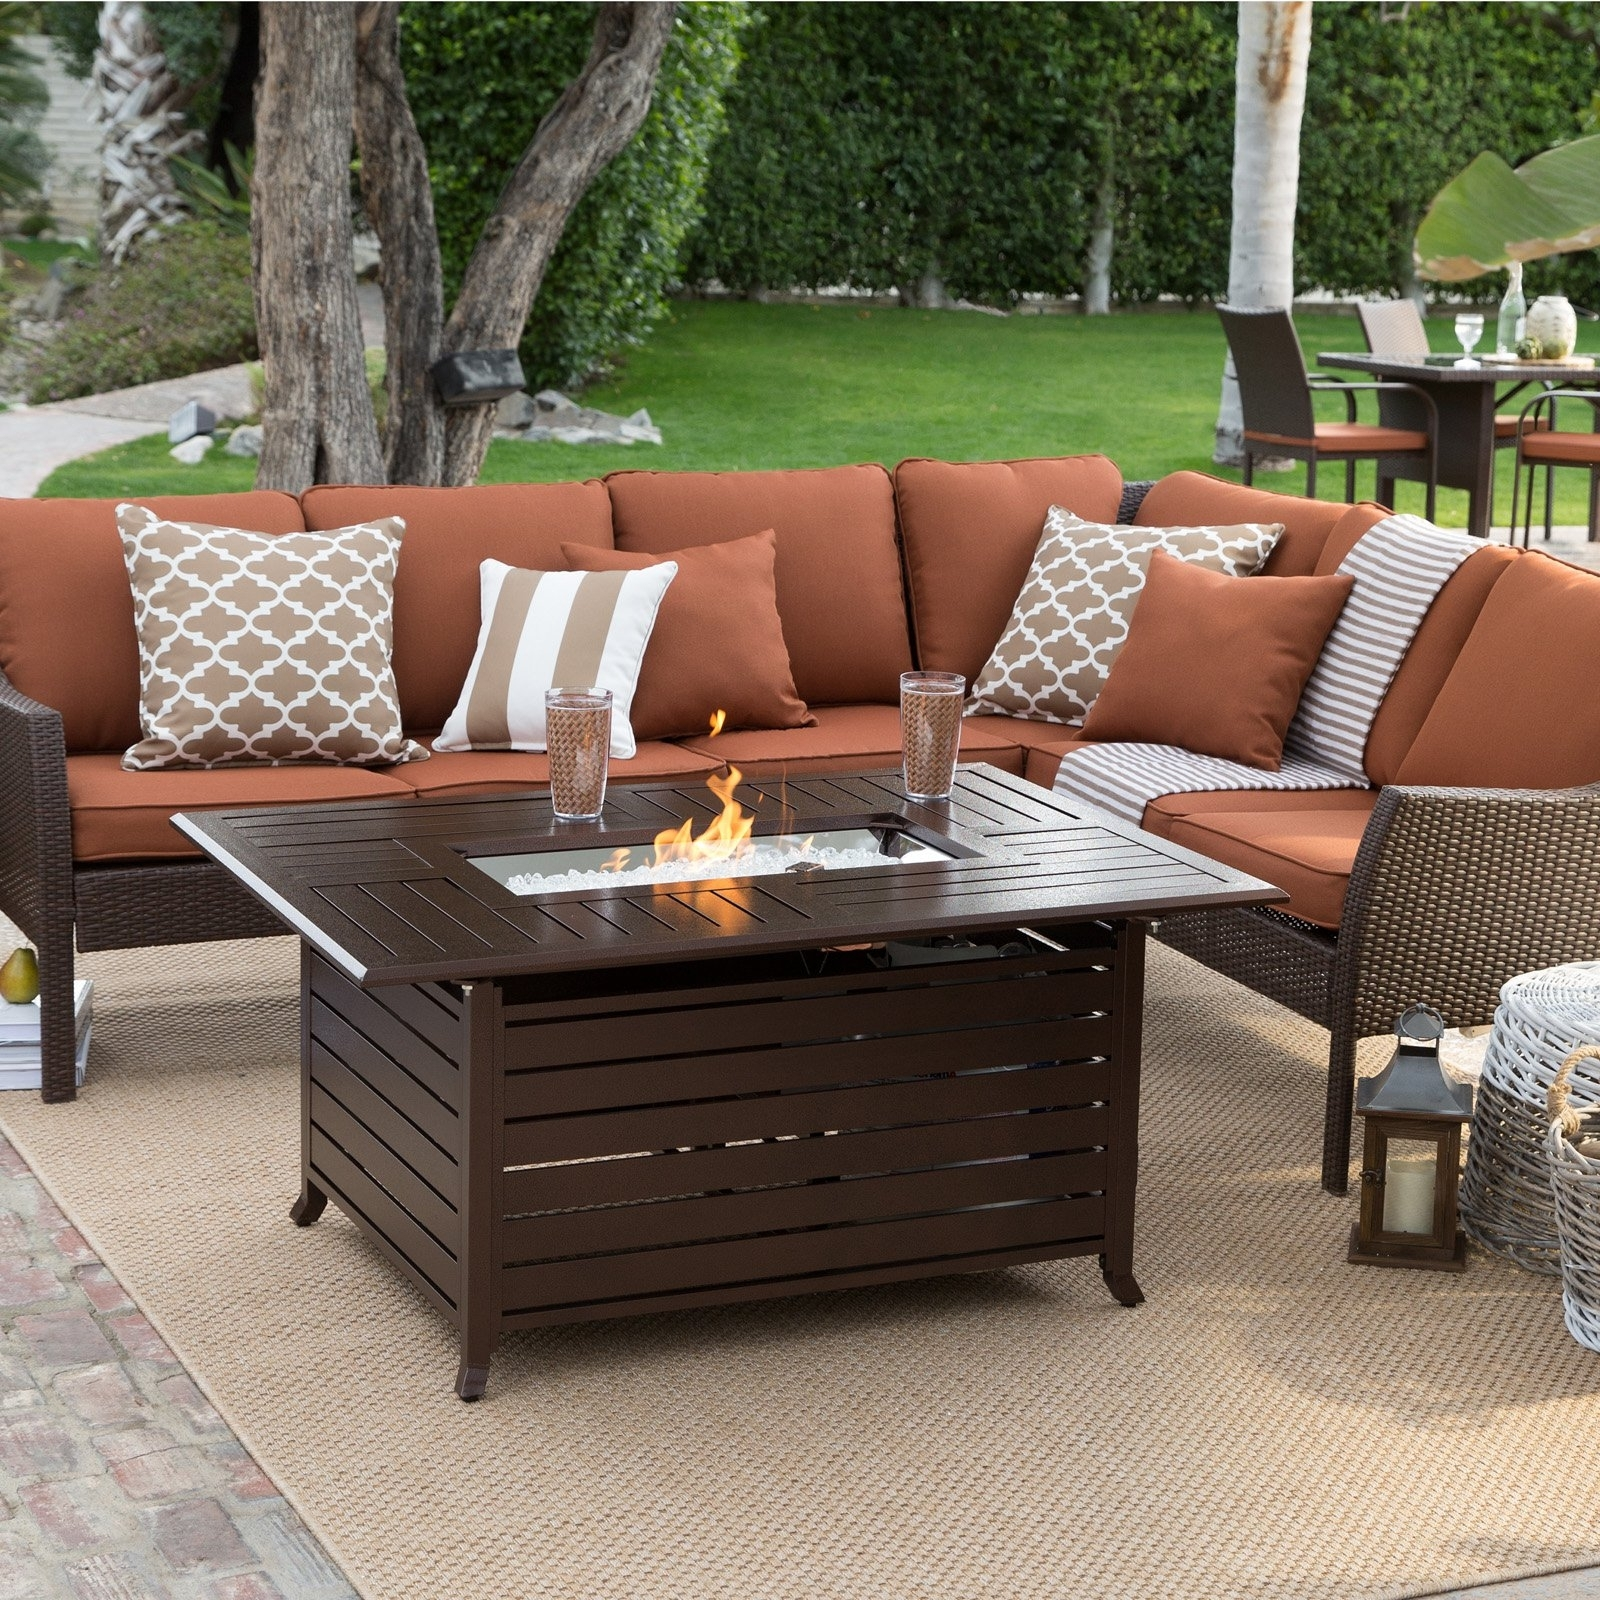 Newest Elegant Fire Pit Chairs For Sale Conversation Sets Deck Furniture Regarding Patio Conversation Sets With Fire Table (Gallery 6 of 20)